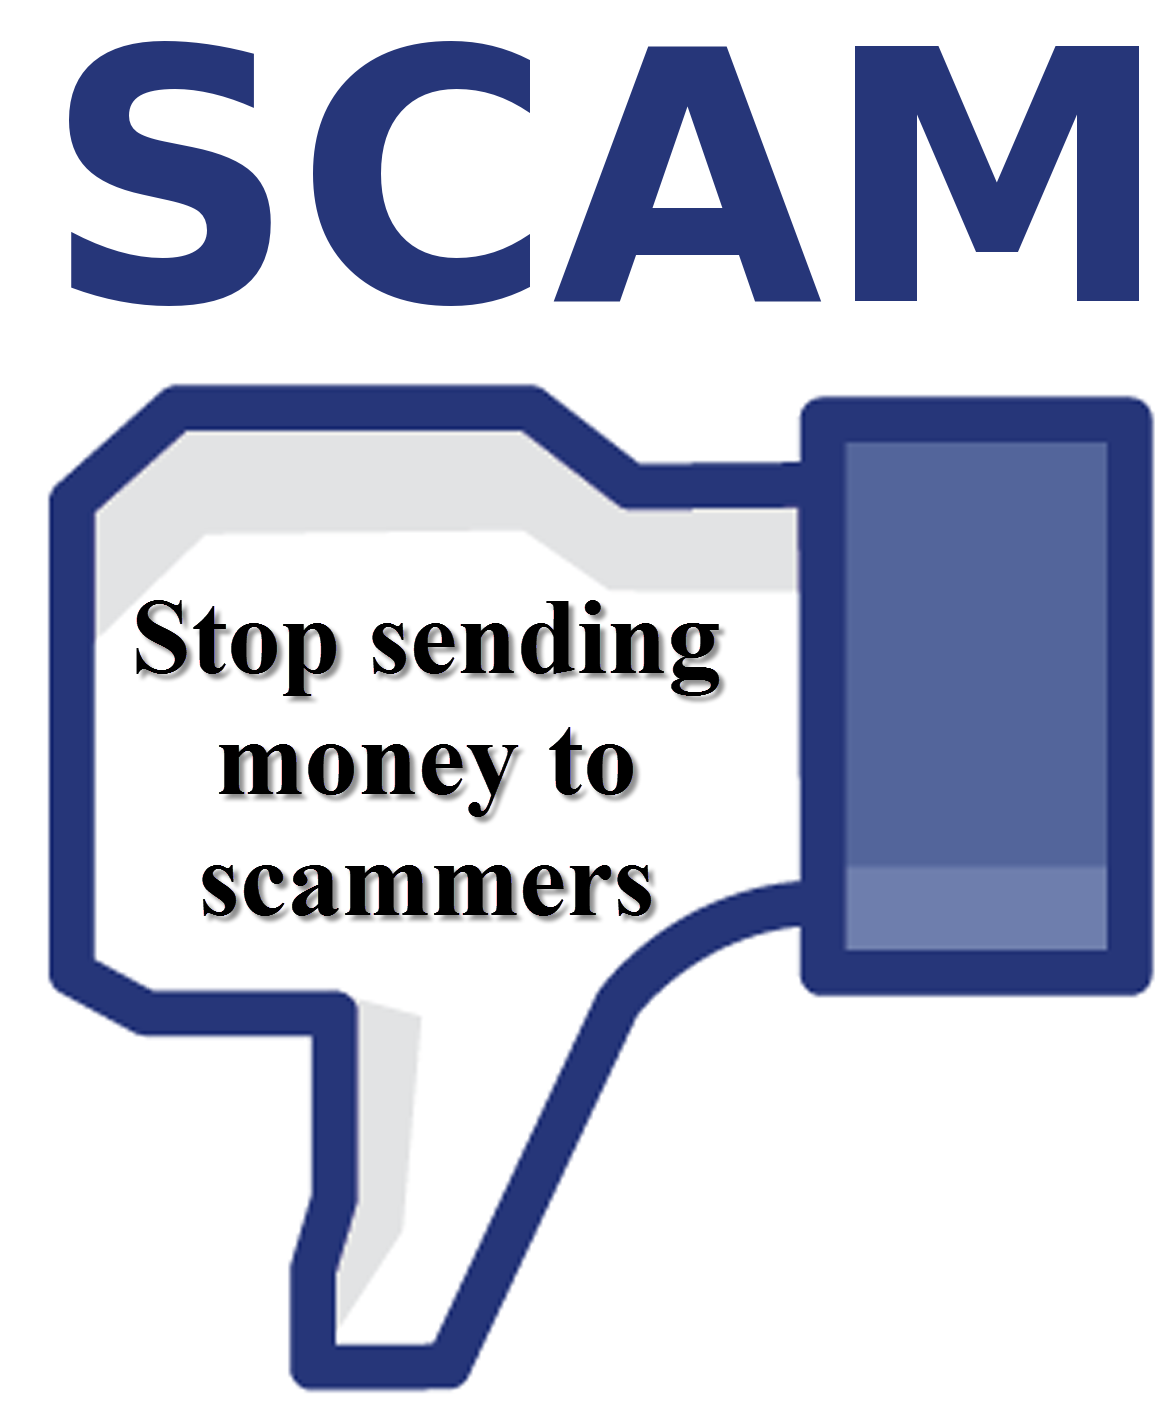 internet spammers and scammers Top 5 internet fraud & scams of all time facebook twitter pinterest whatsapp email advertisement if you've been using the internet, and specifically email, for .